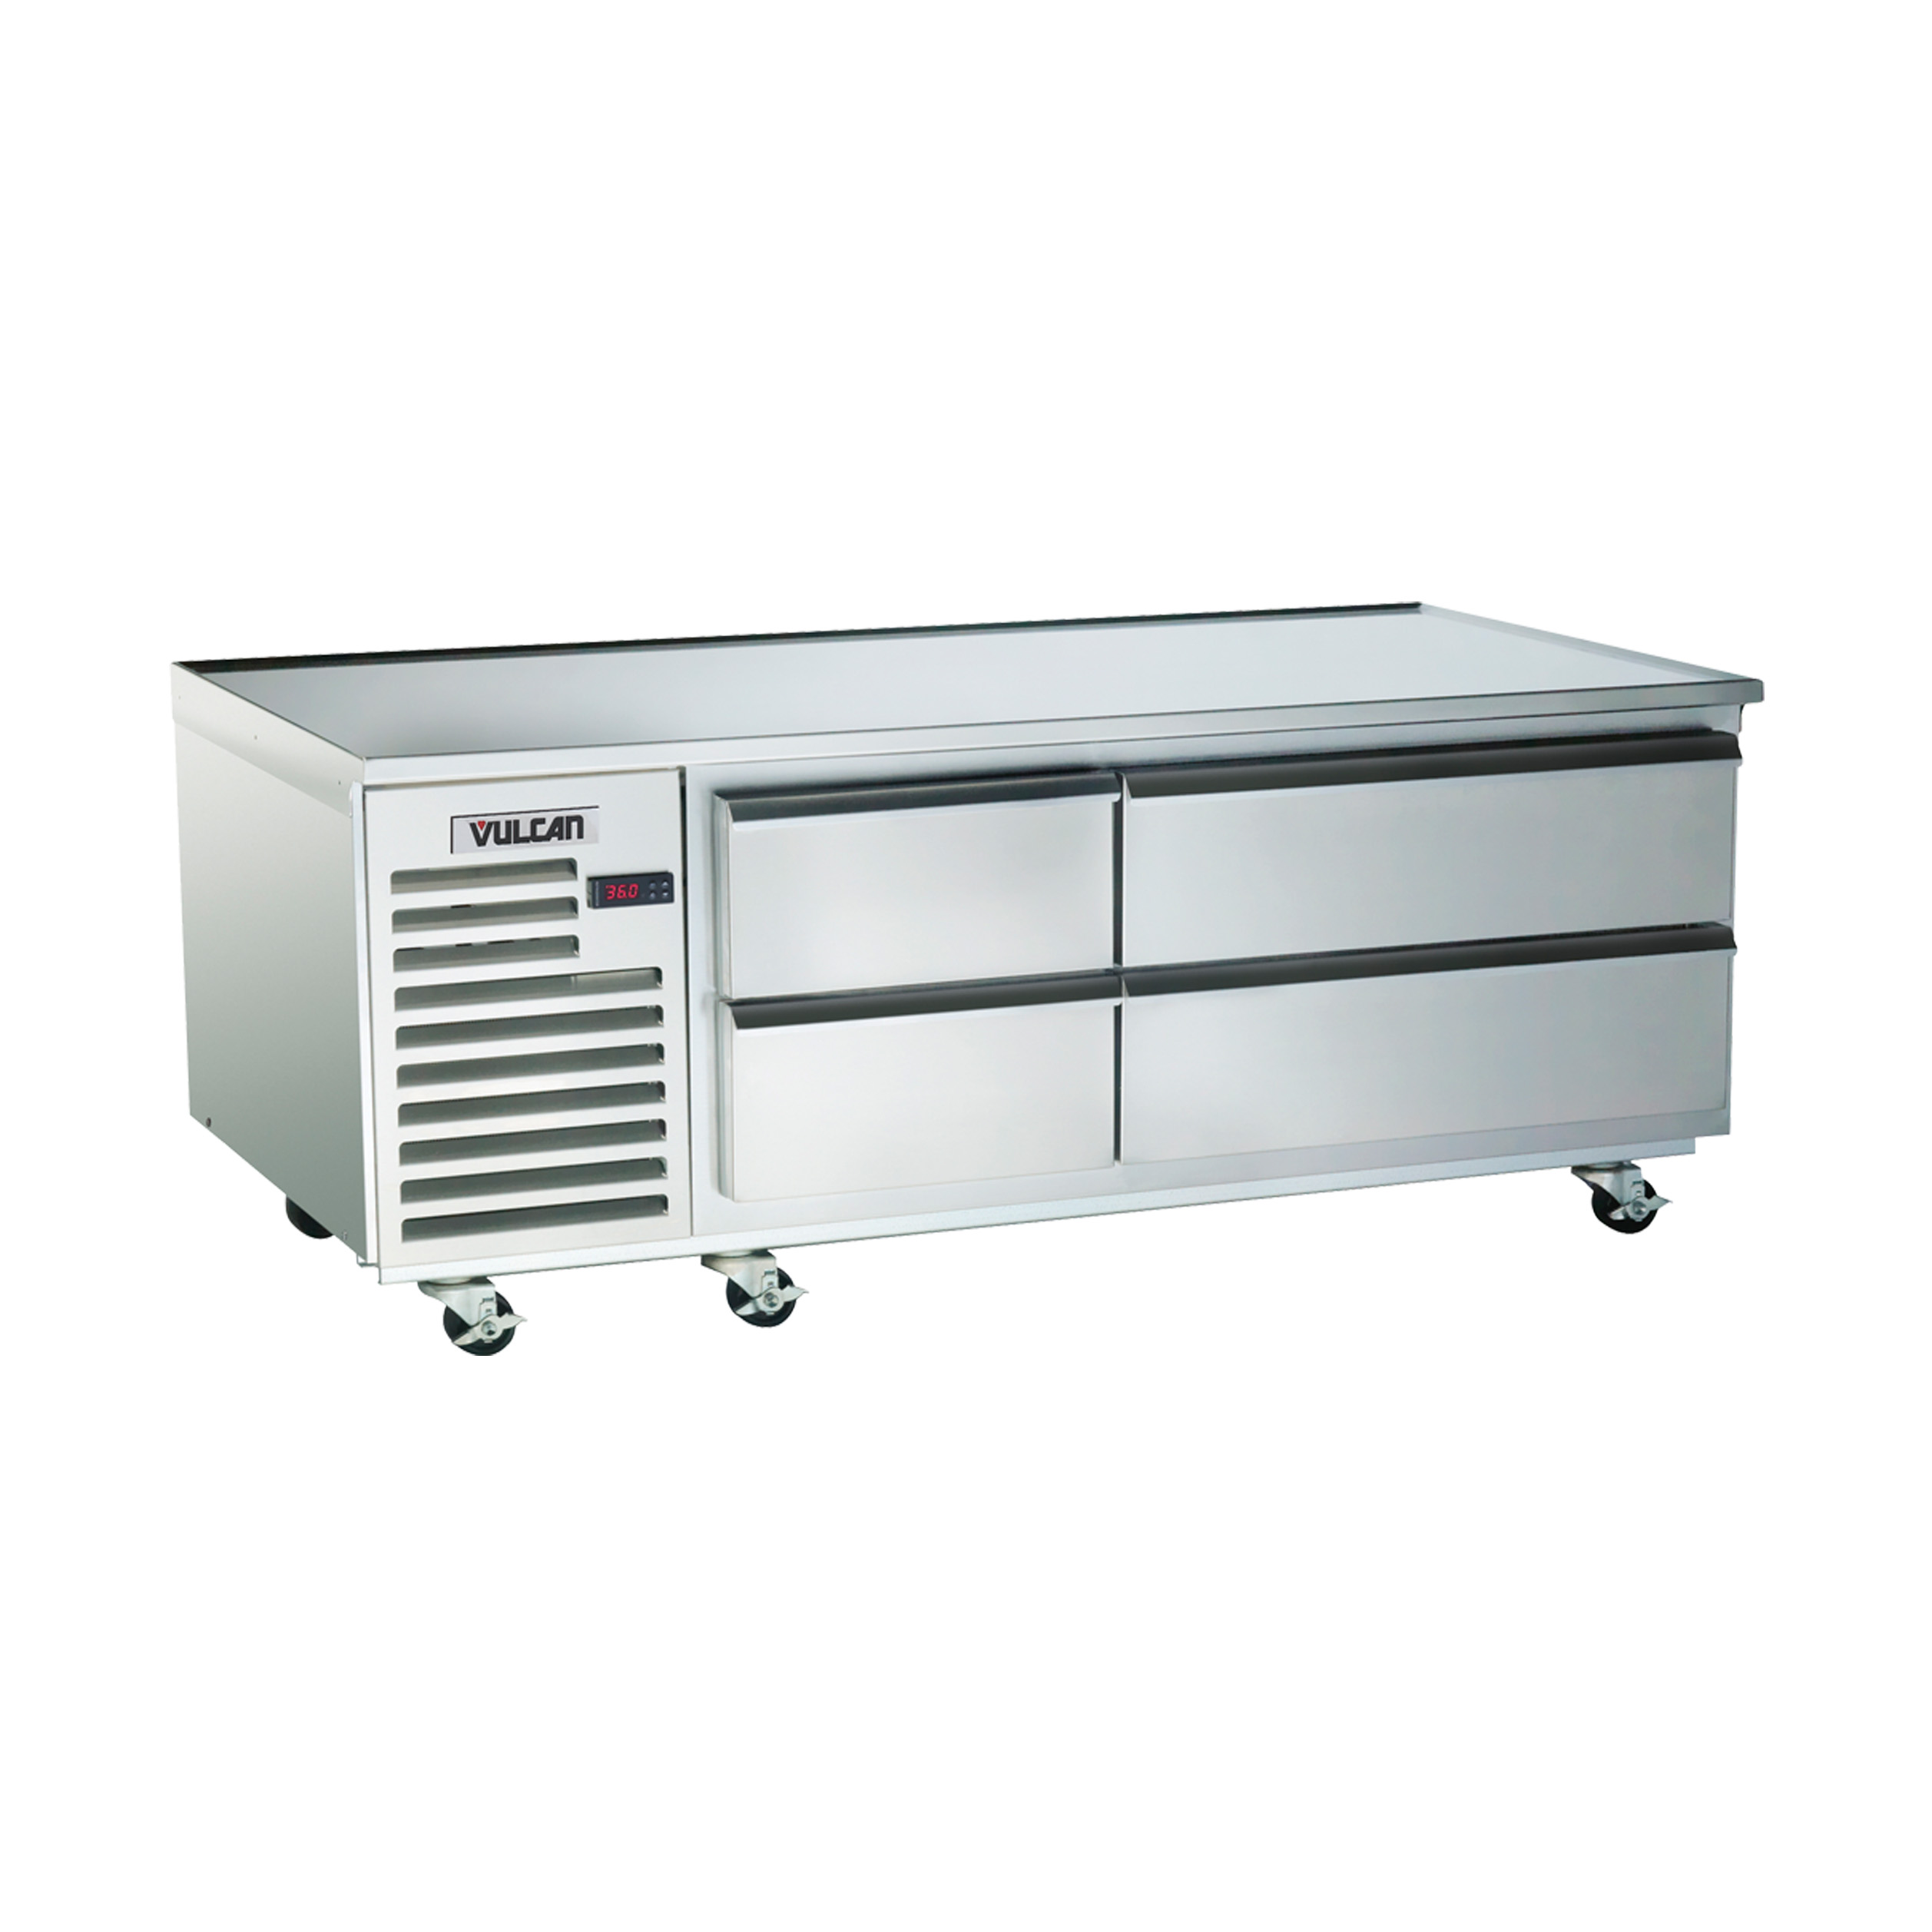 Vulcan VR84 equipment stand, refrigerated base